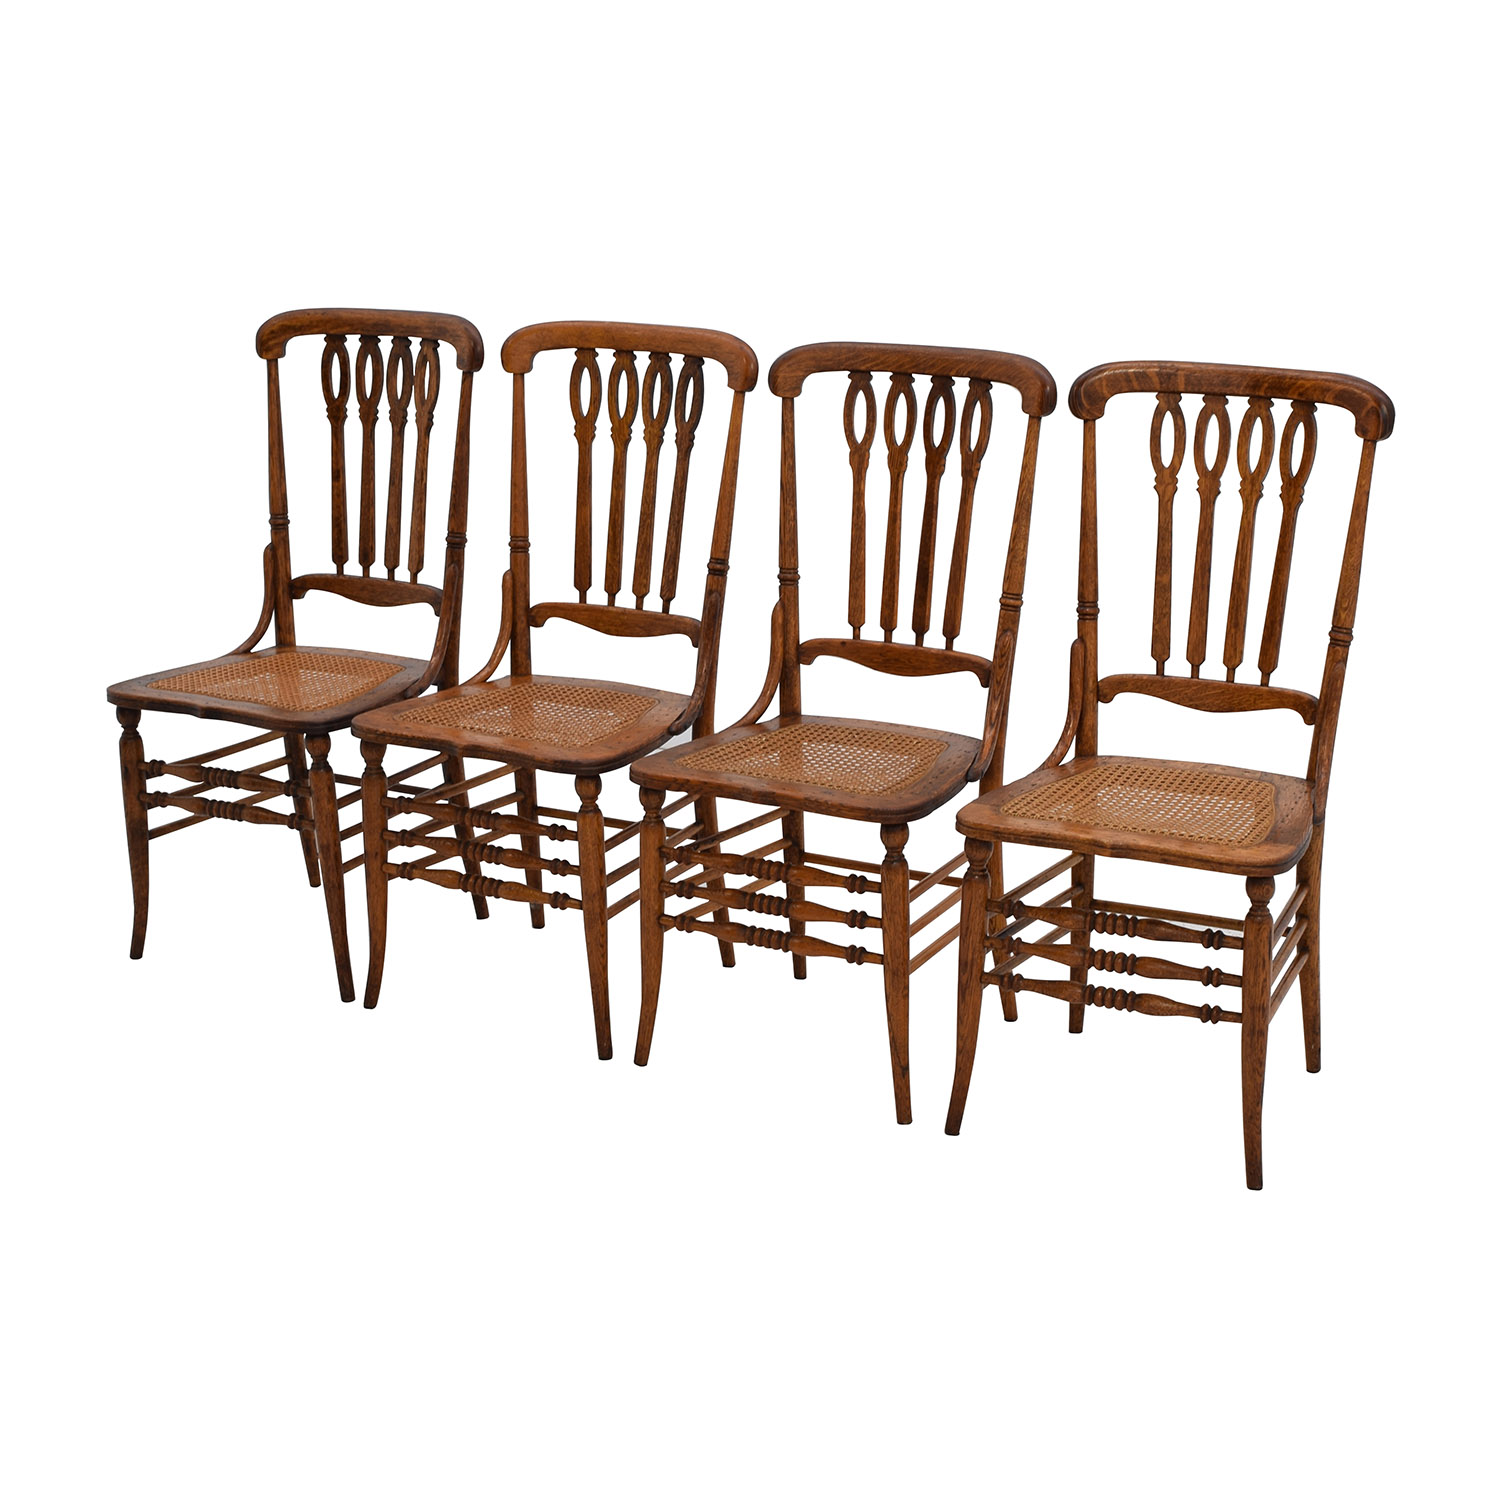 Off antique cane weaved wood dining chairs